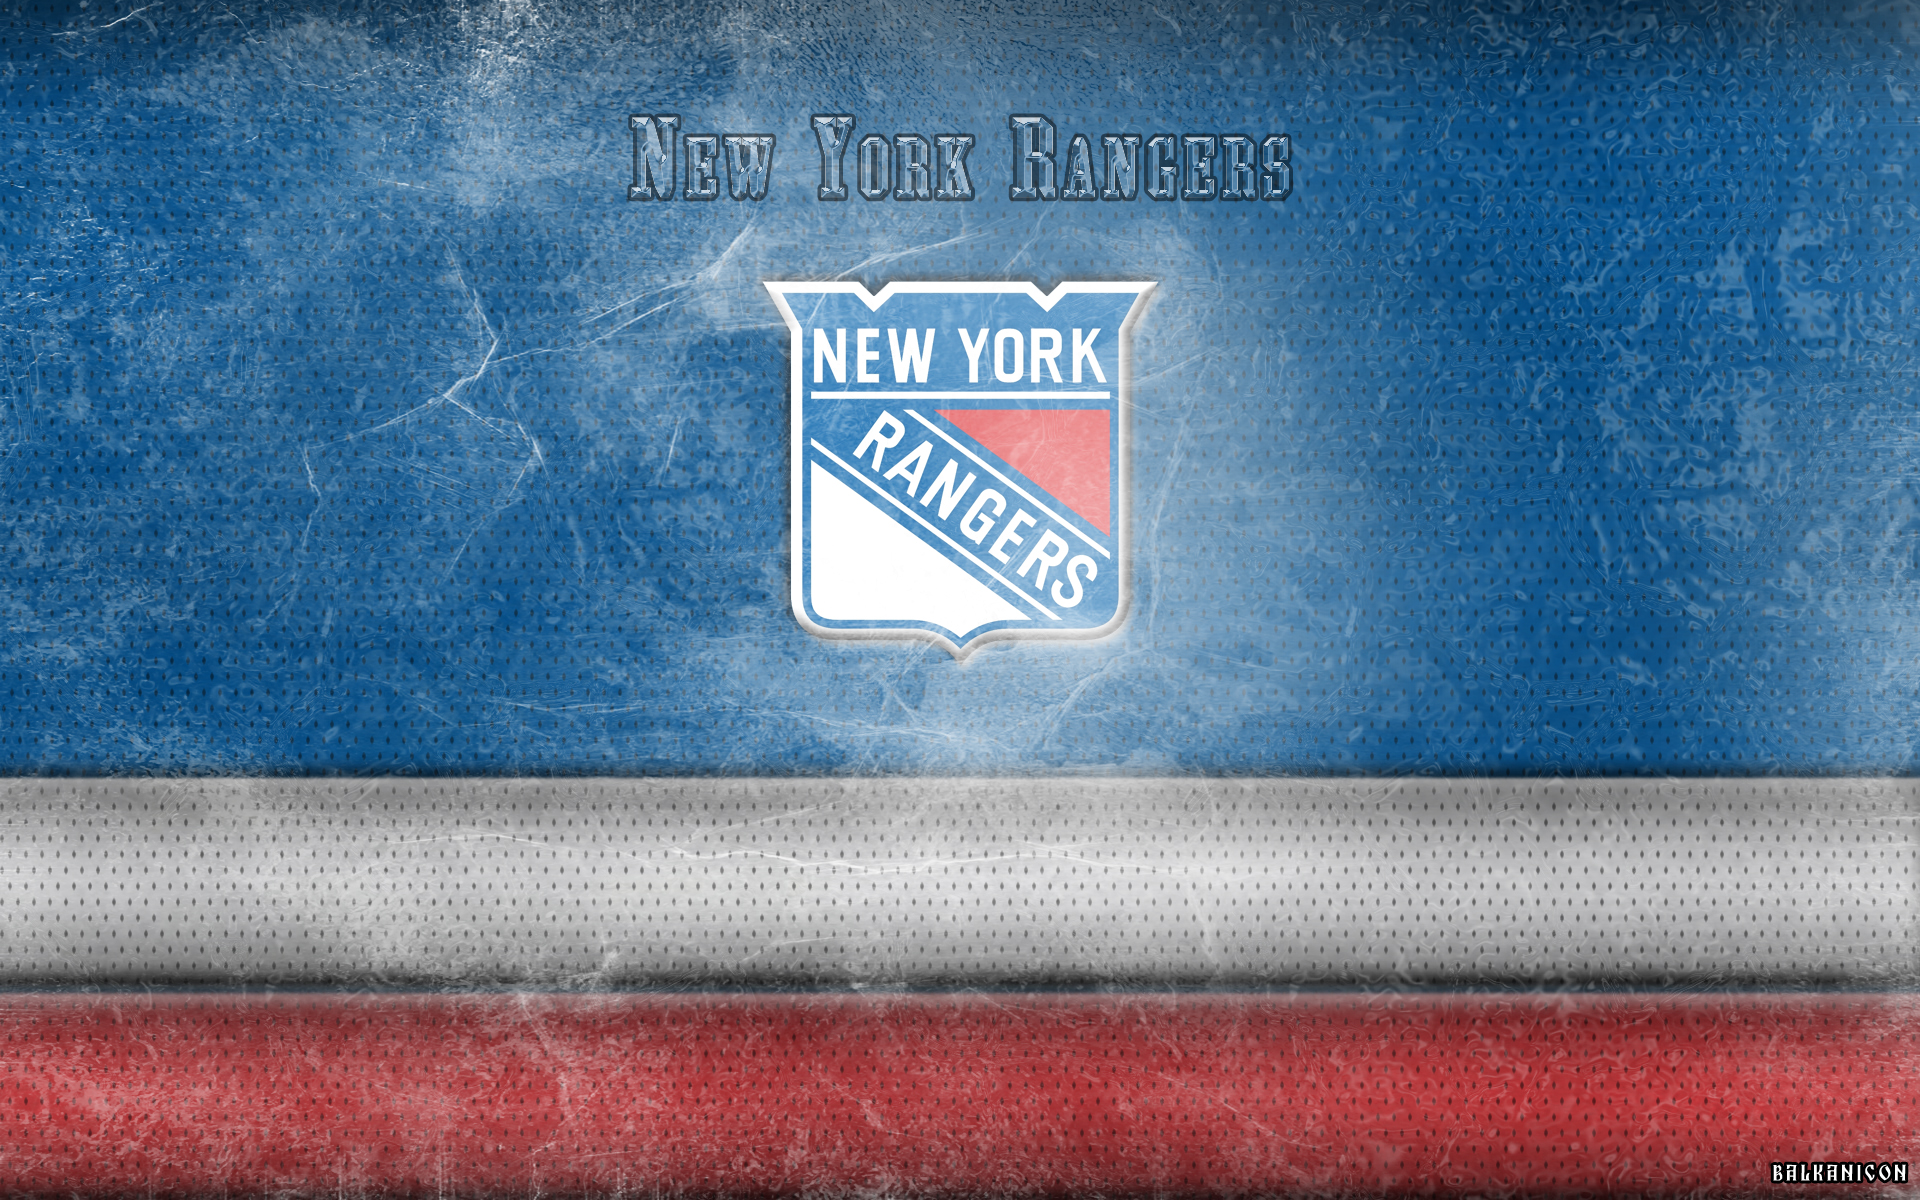 Wallpapers on NewYorkRangers - DeviantArt